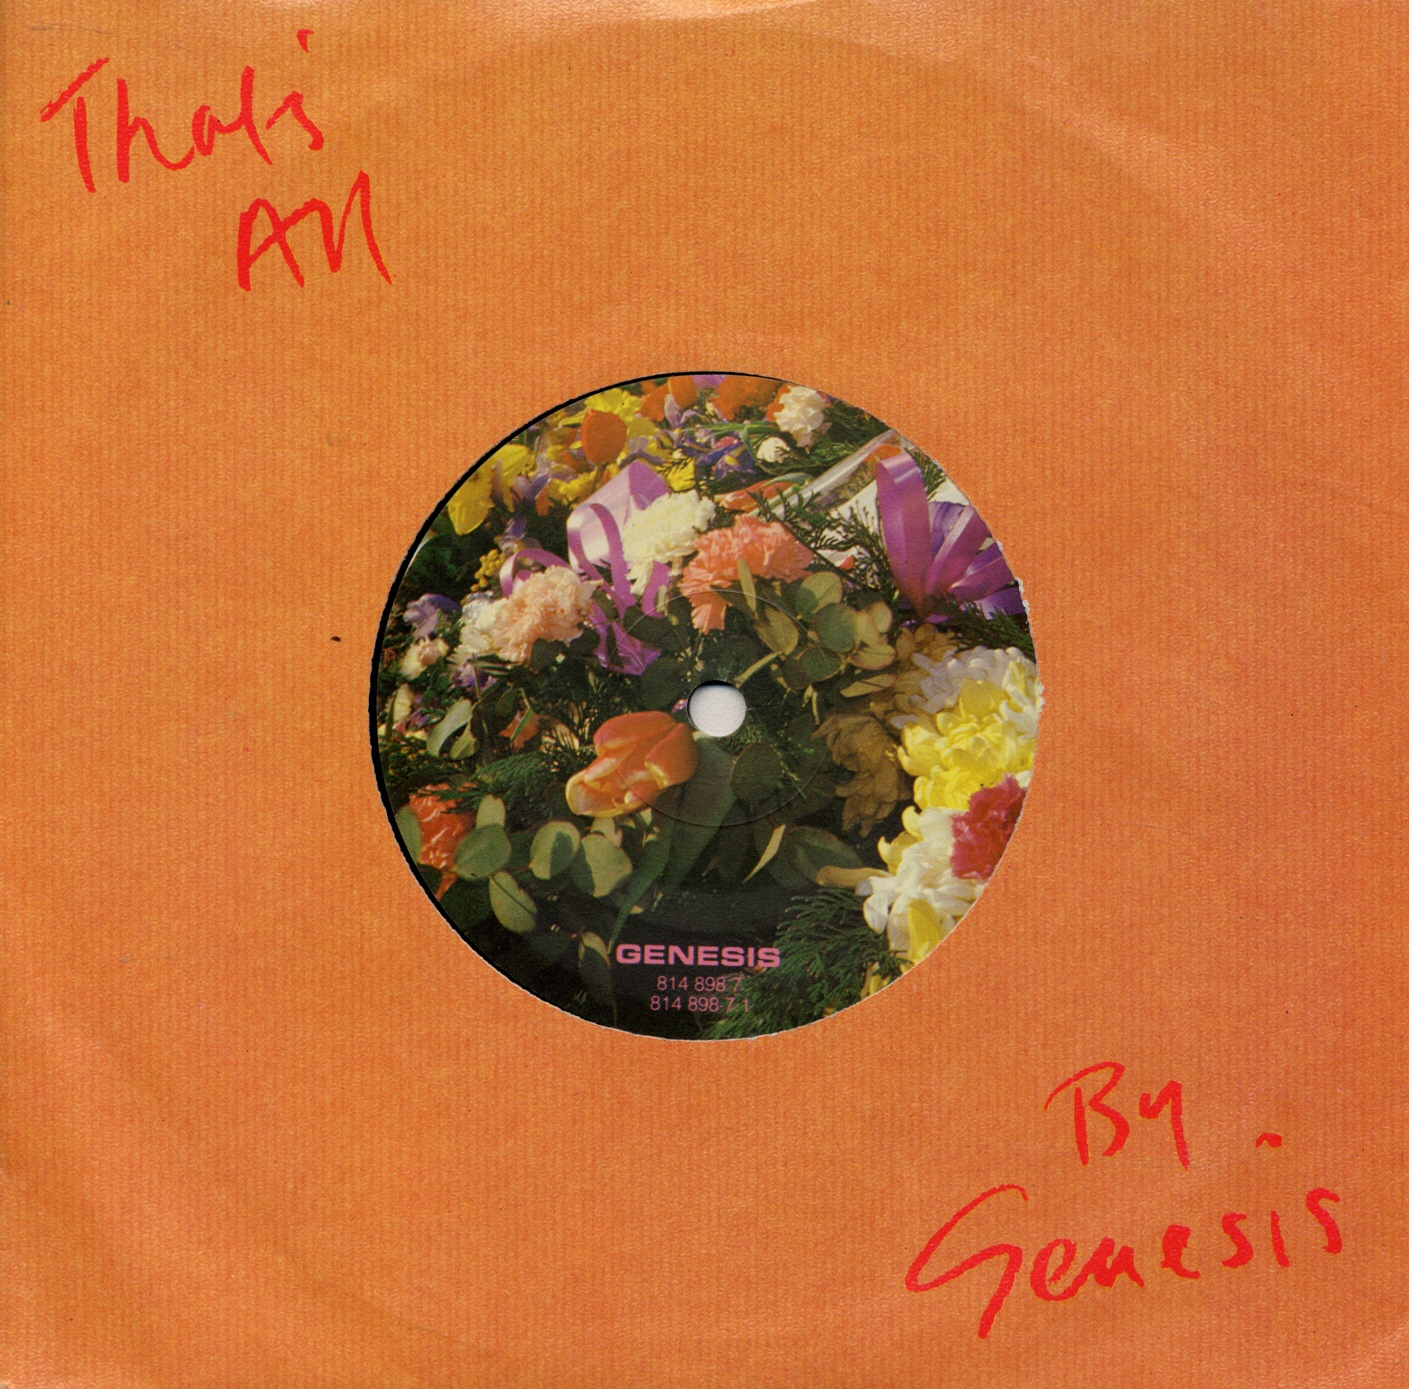 Cover: That's all, Genesis